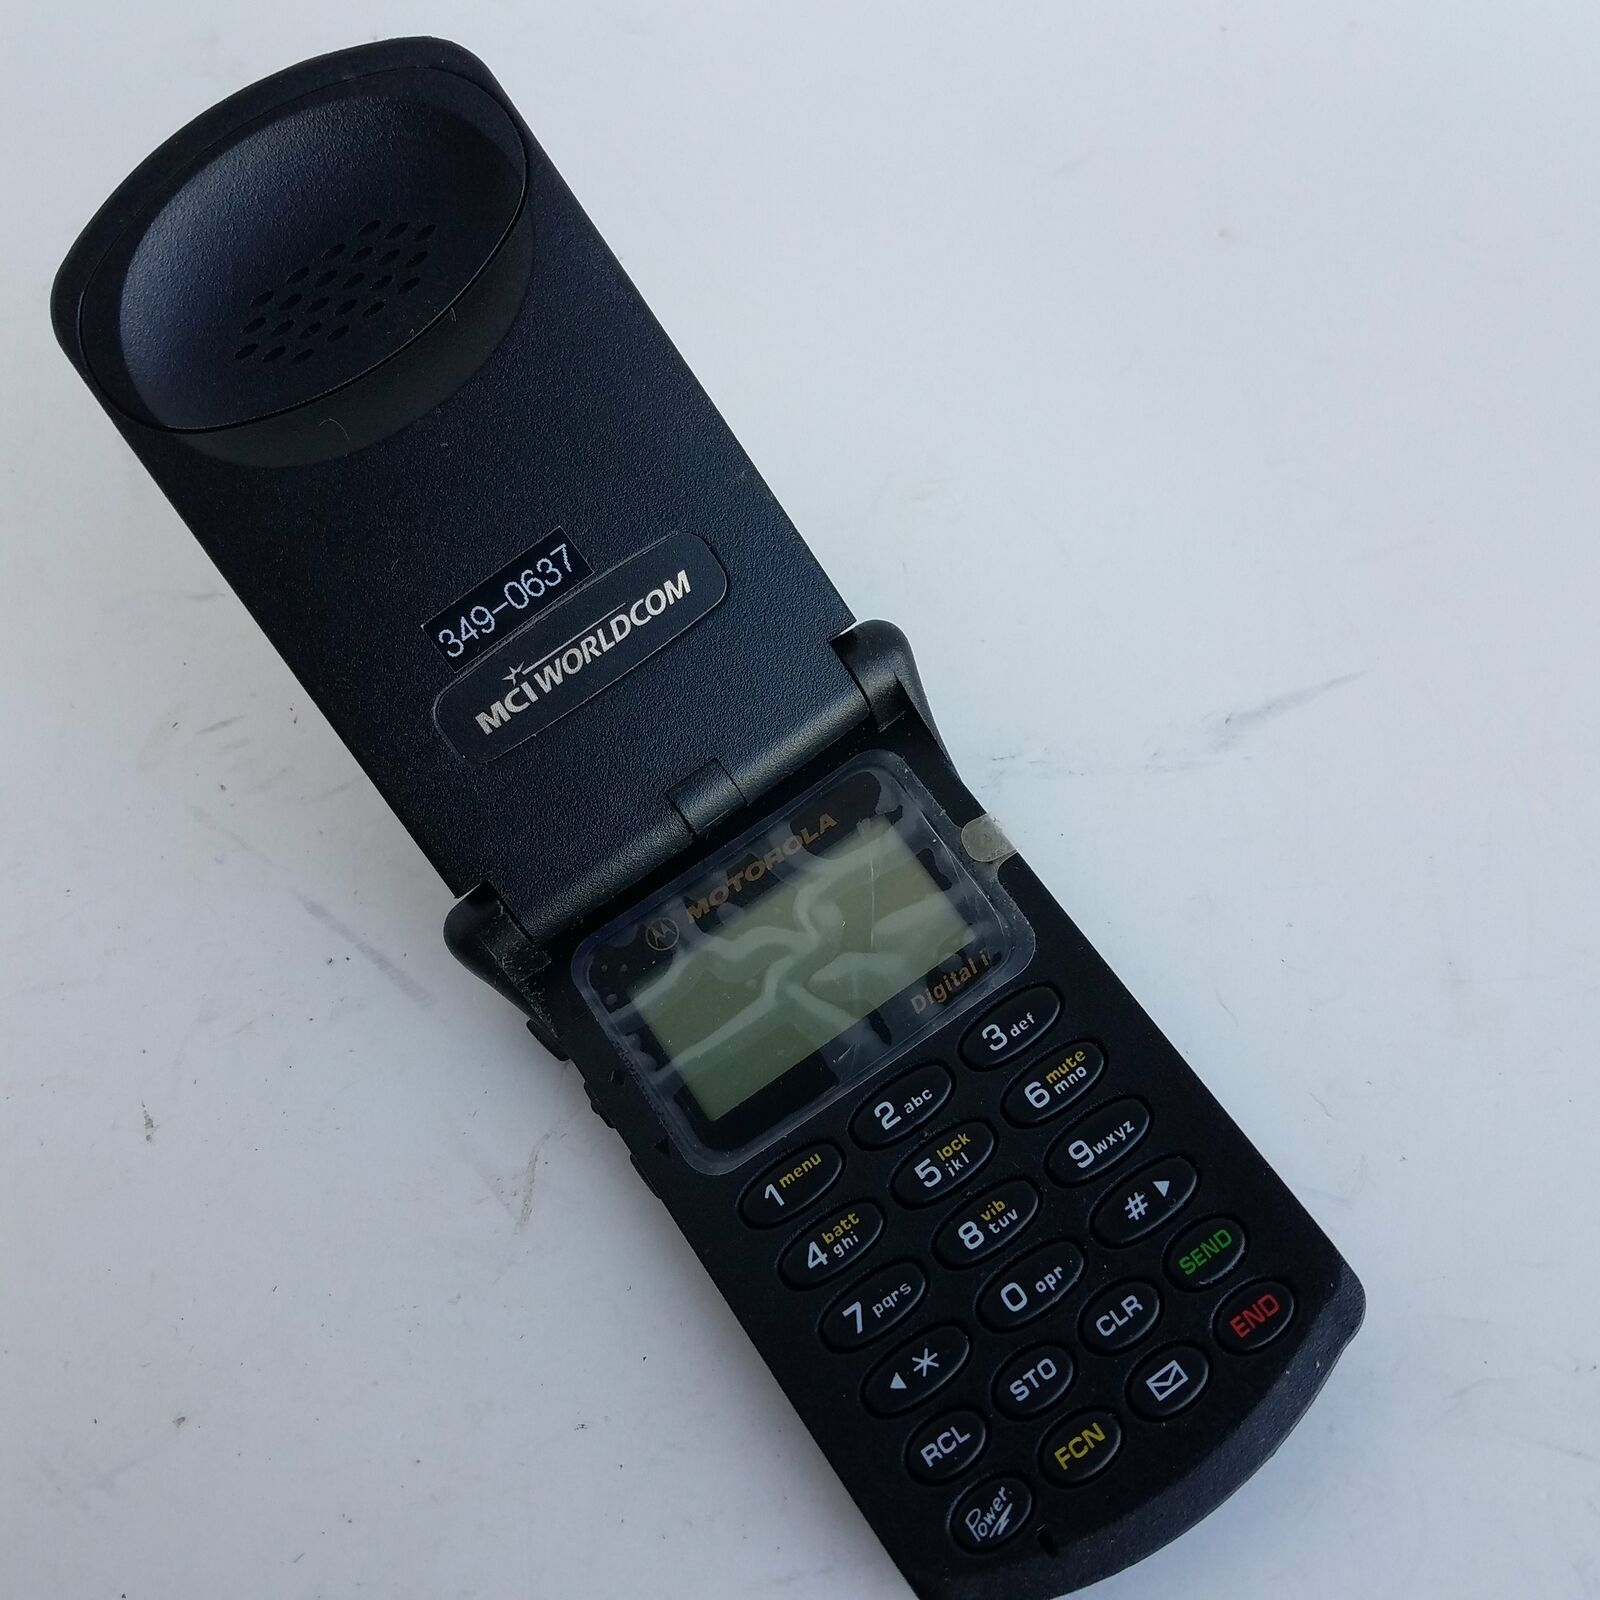 Motorola StarTac Cell Phone Digital i ST7790i image 3